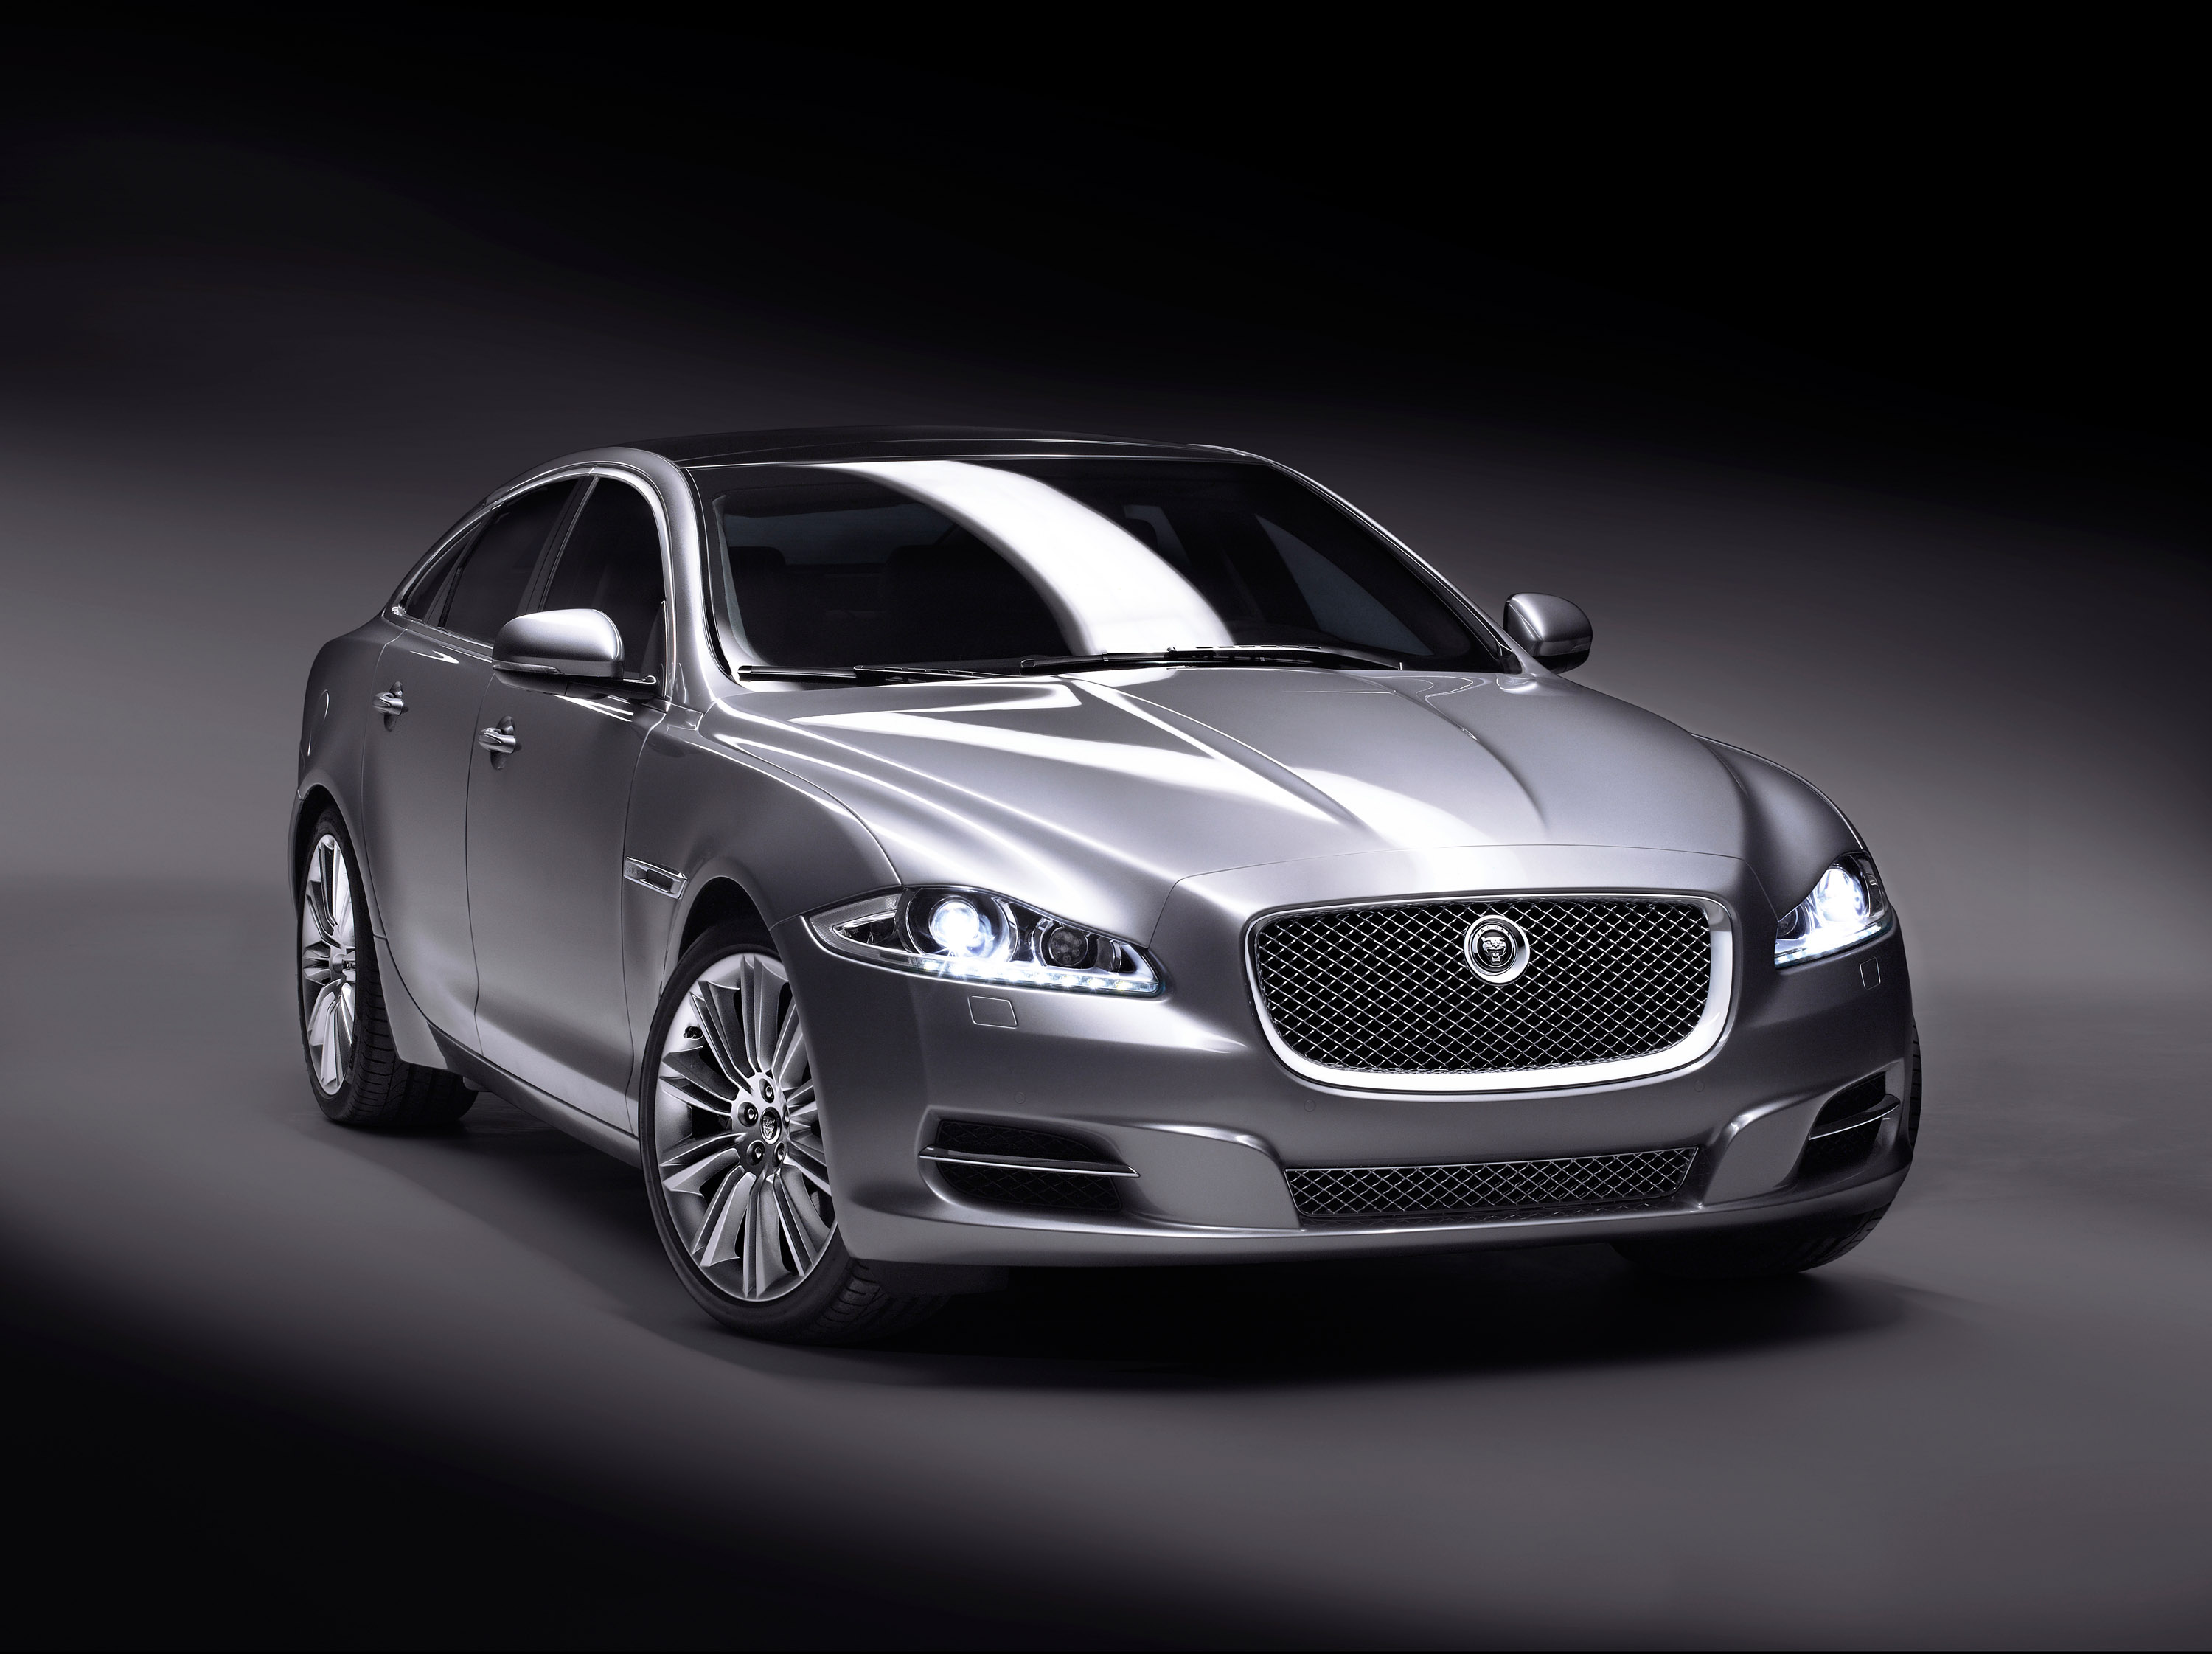 The All New Jaguar XJ Officially Revealed